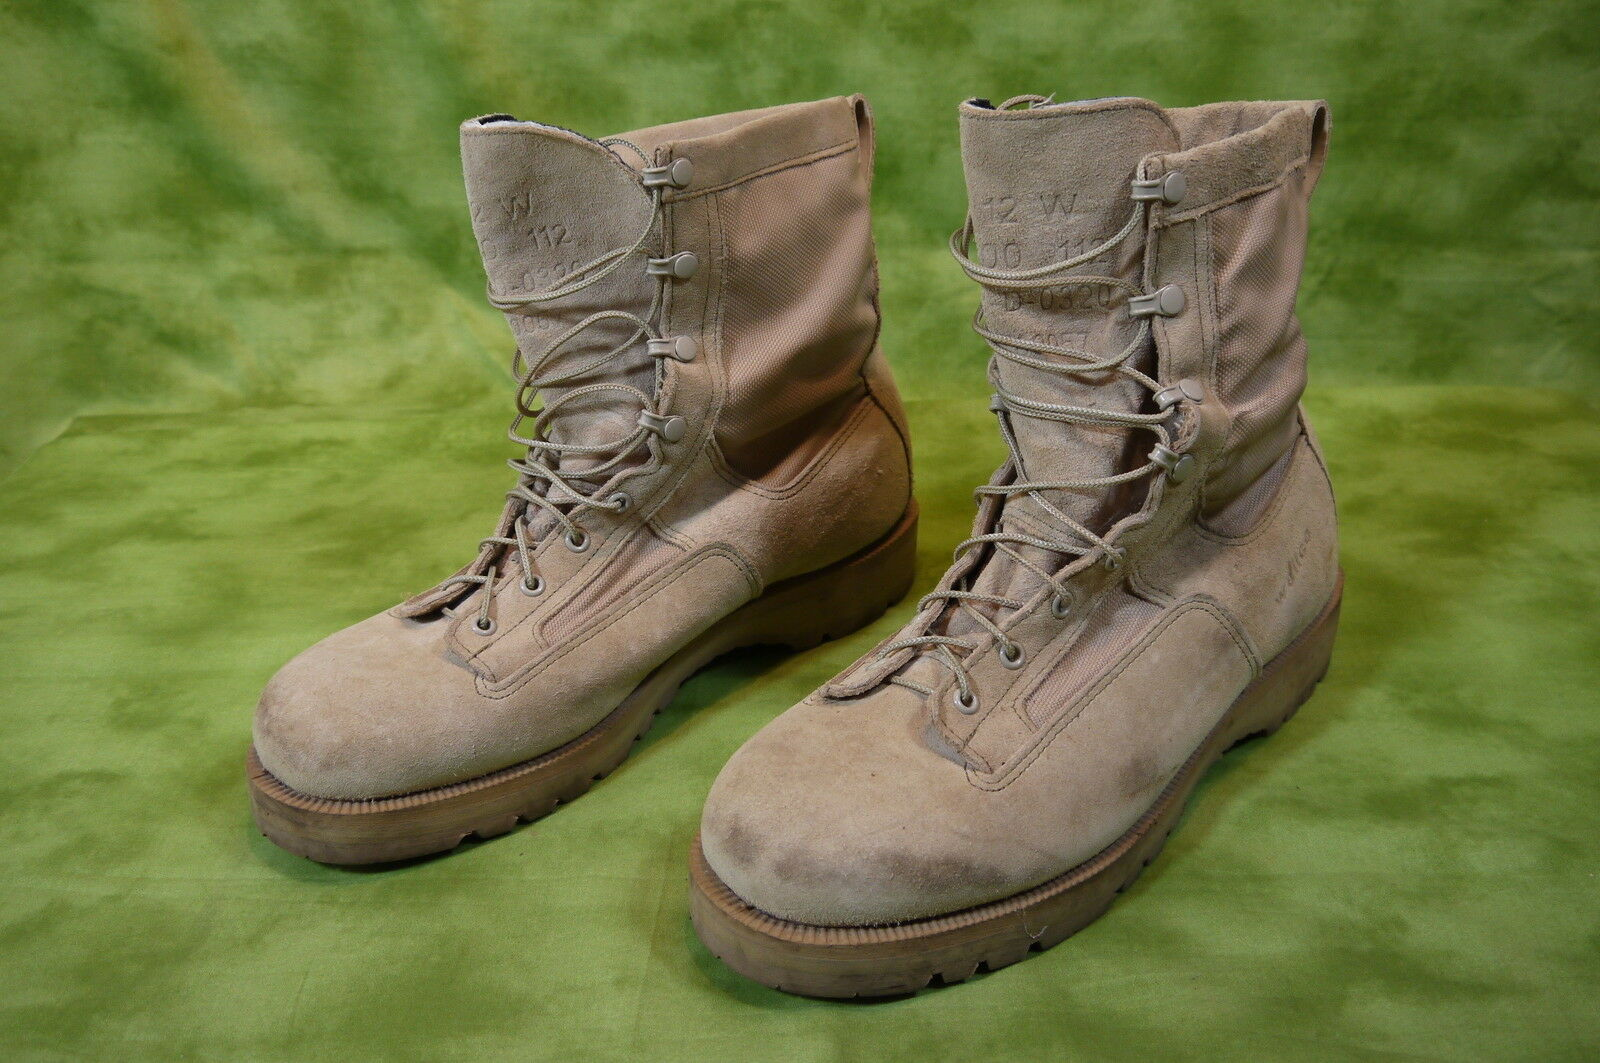 Wellco US Military Boots Desert Tan Men's 12 W around 10